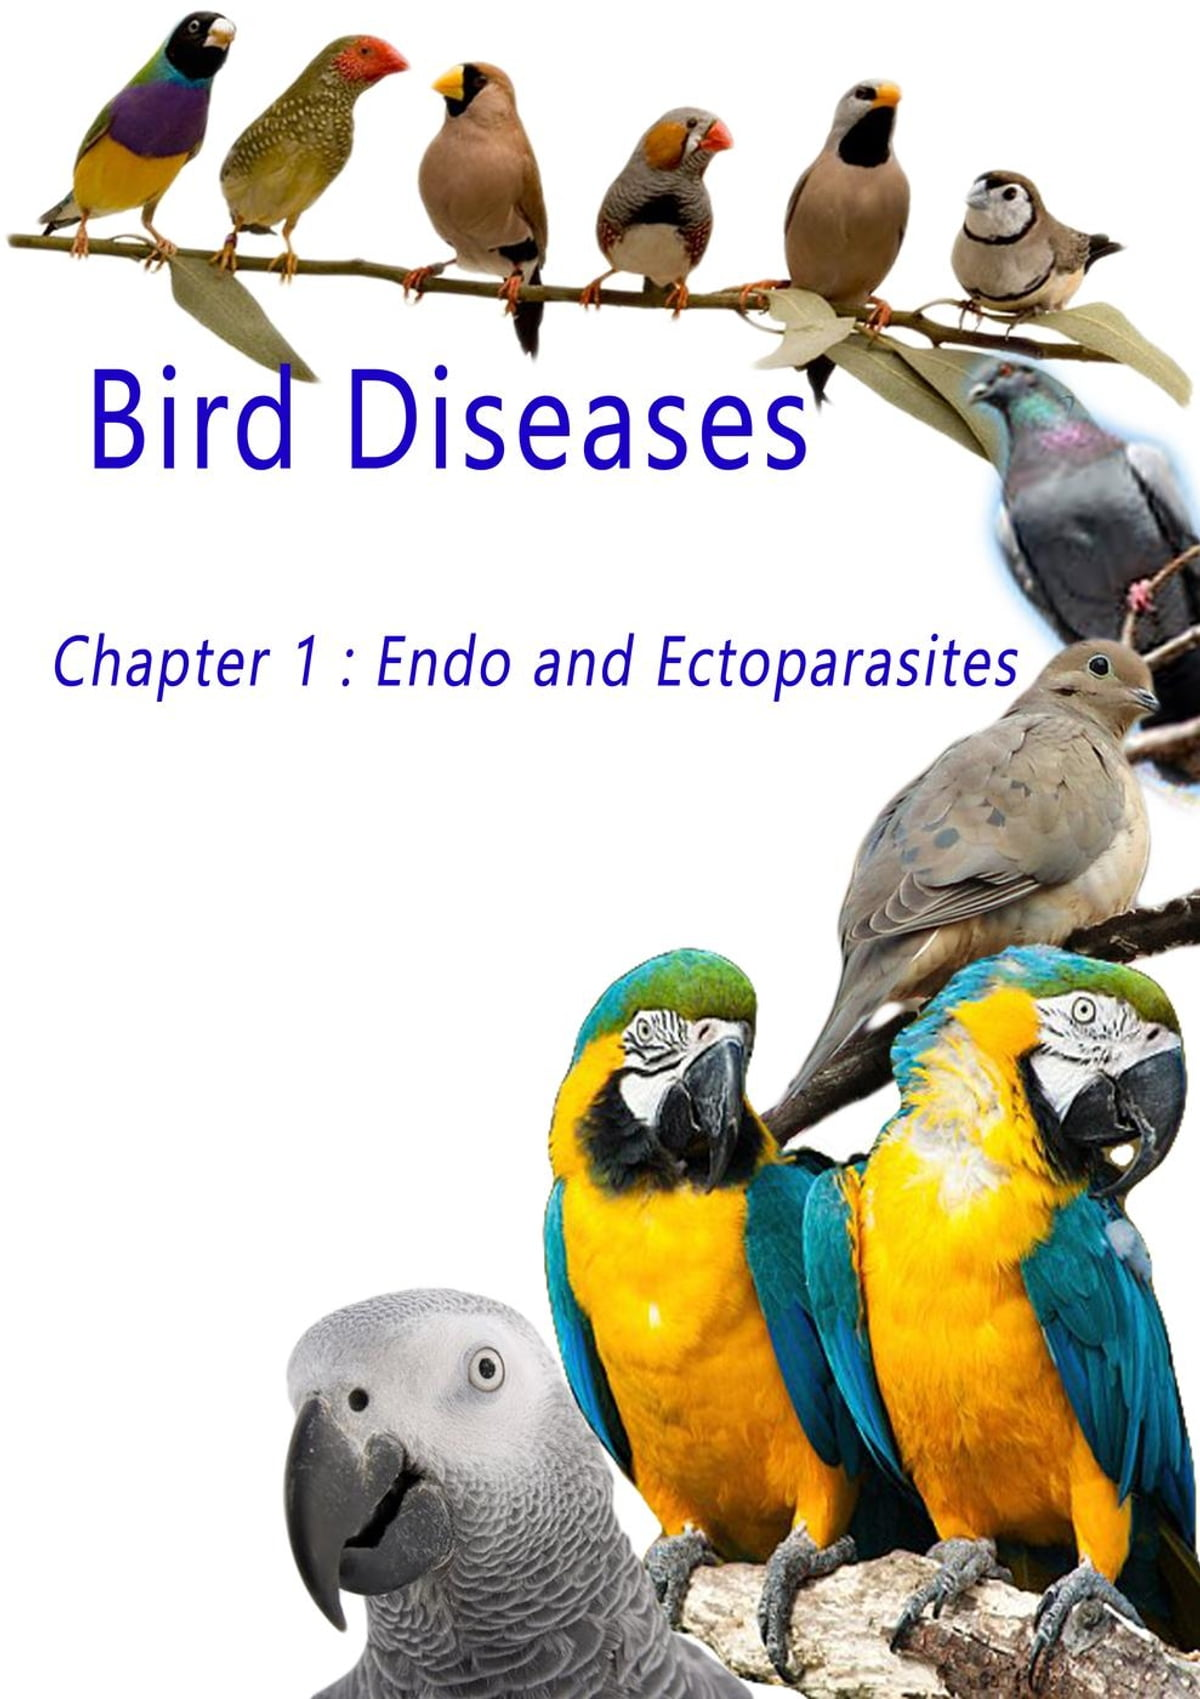 Diseases of domestic birds: a selection of sites